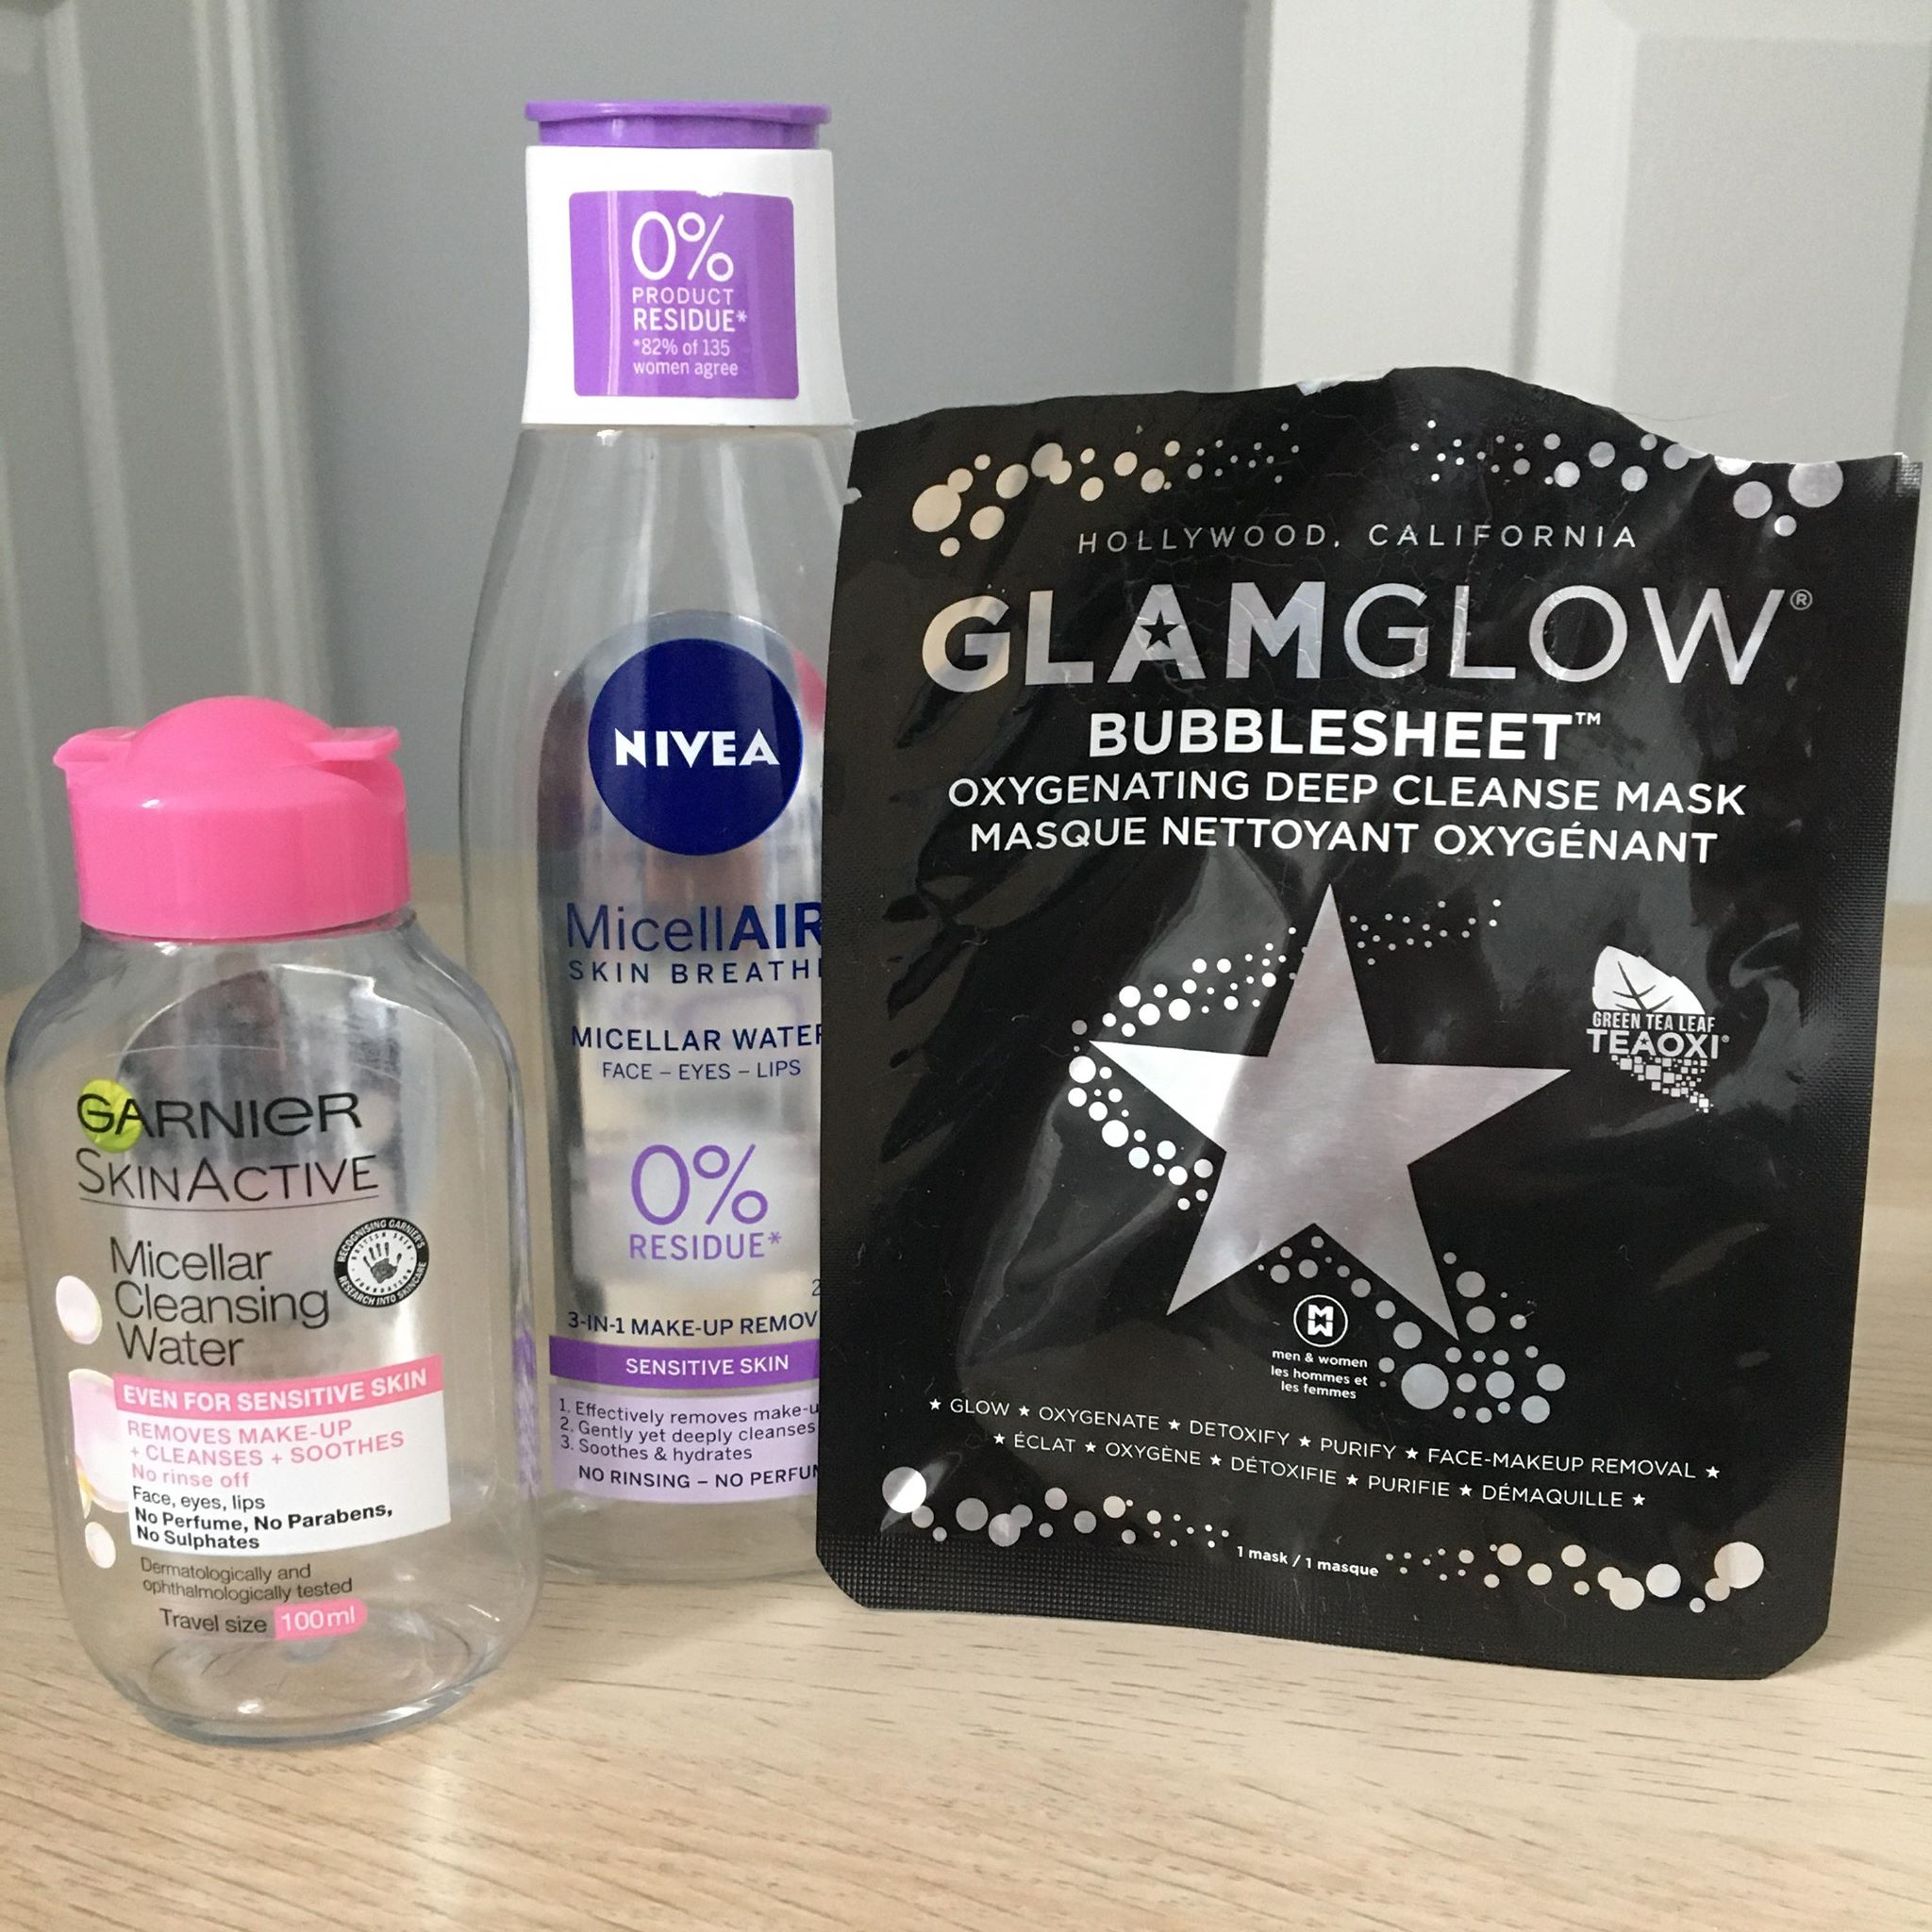 Garnier Micellar Water, Nivea MicellAIR water, GlamGlow Bubblesheet mask - Empties